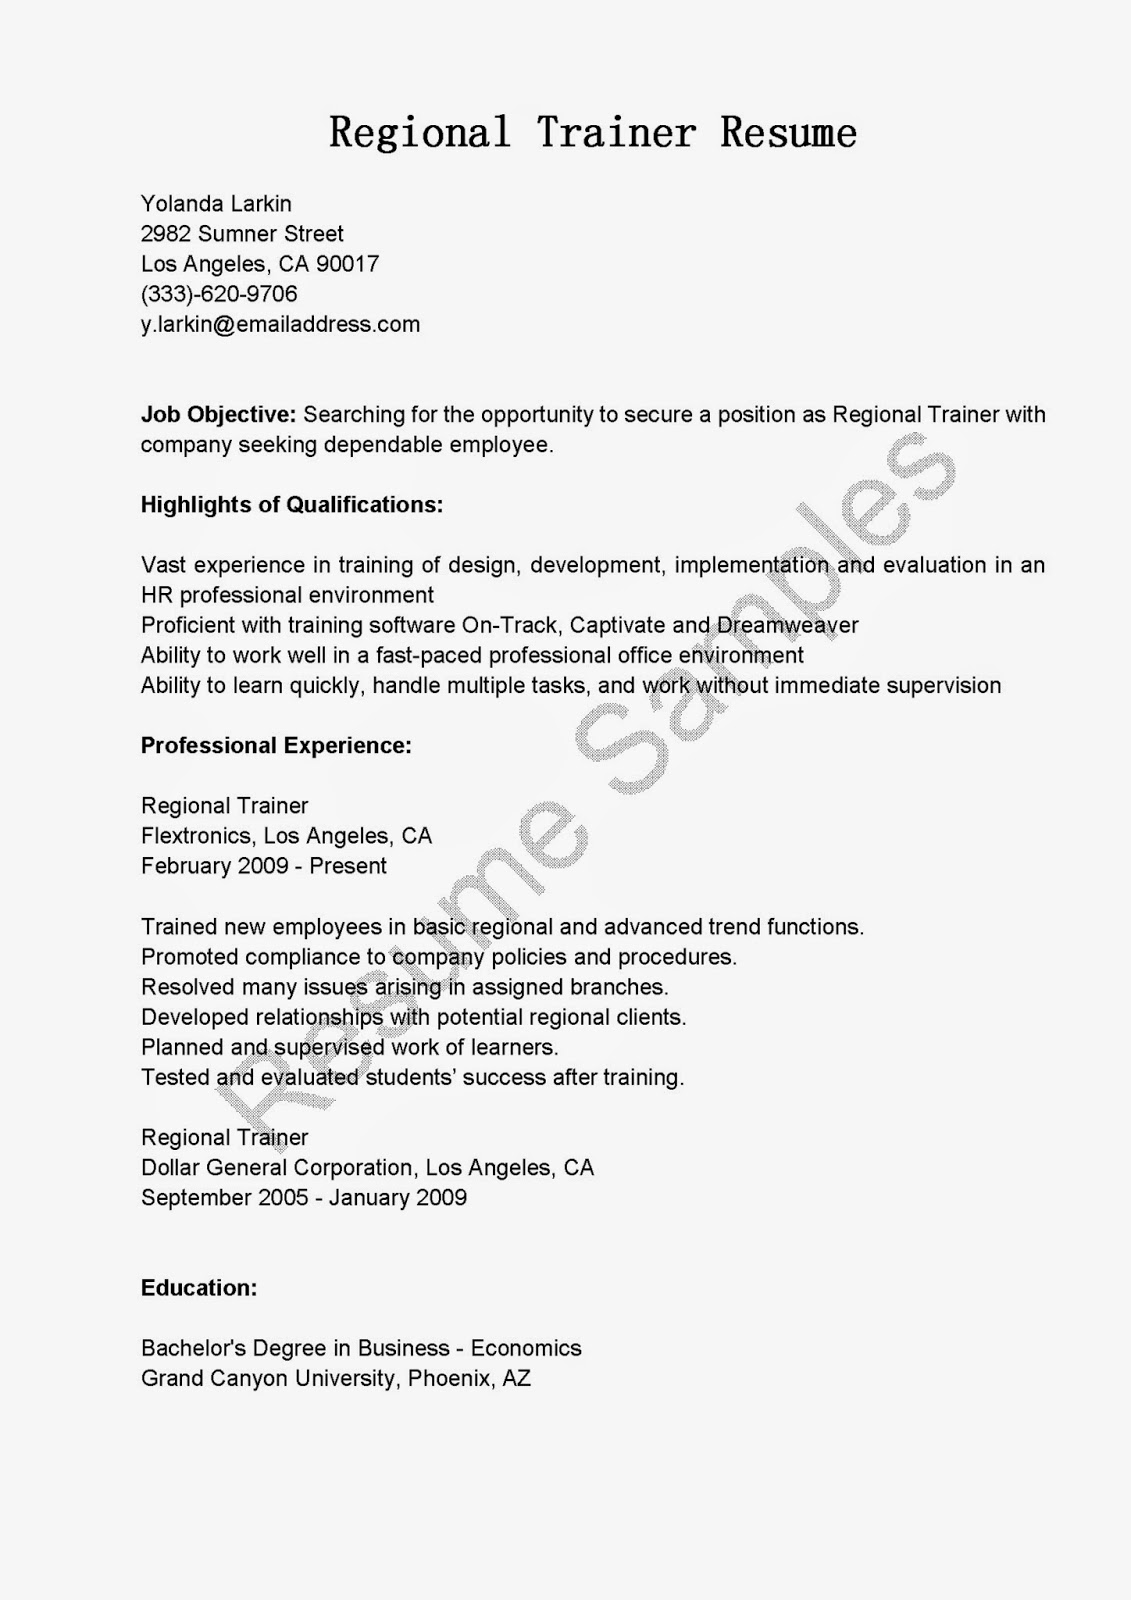 Sample Trainer Resume Resume Samples Regional Trainer Resume Sample